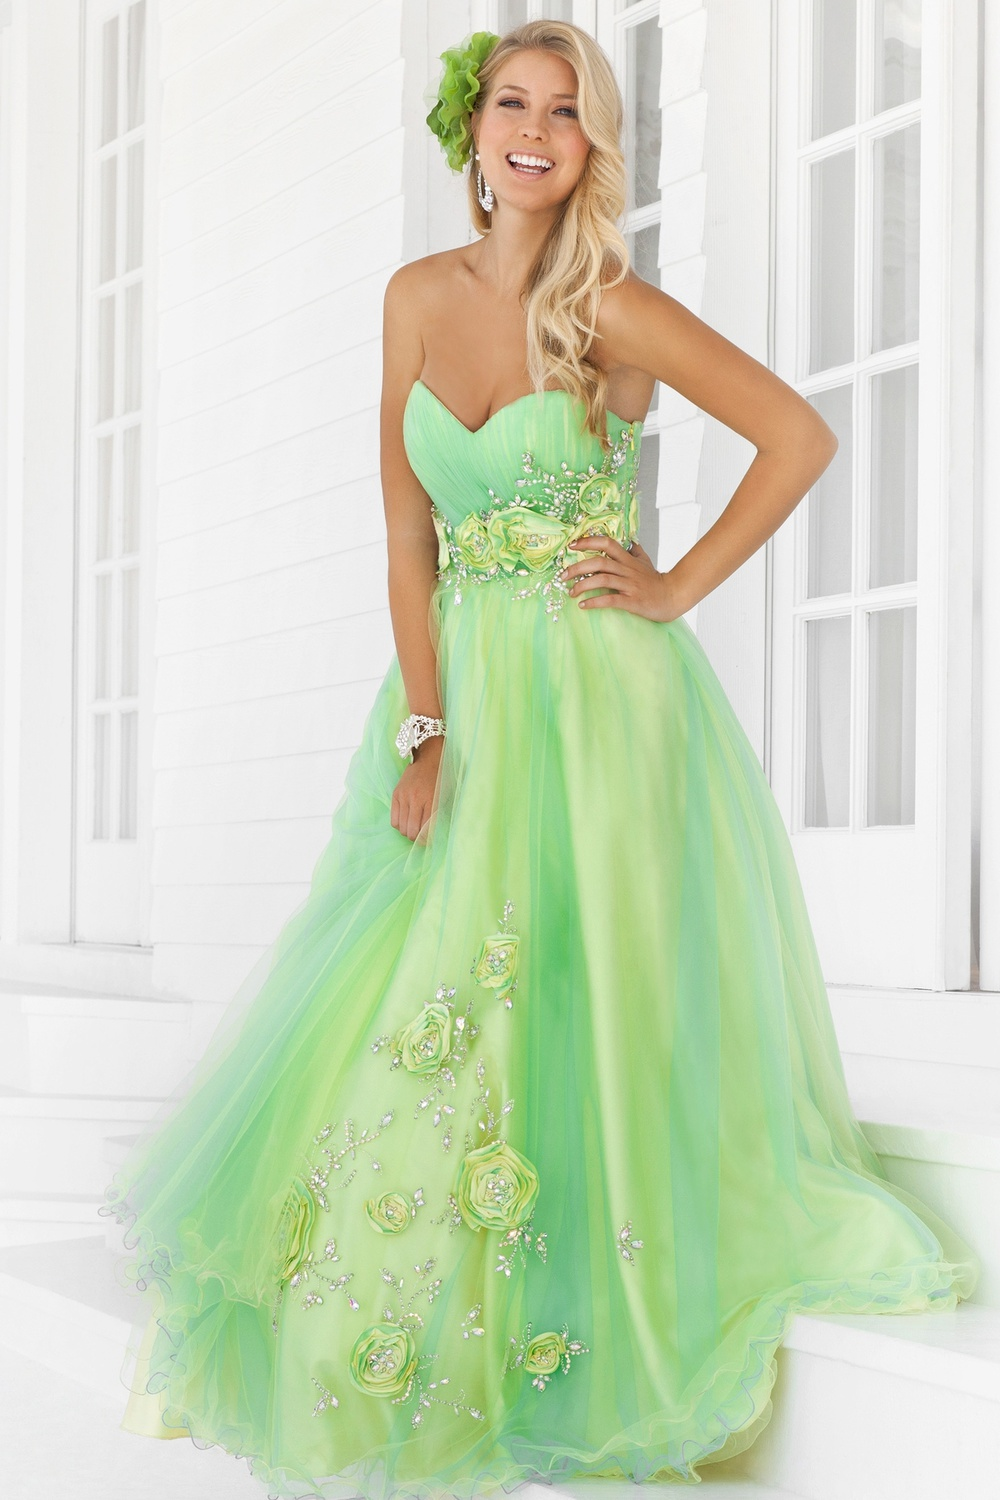 Choosing The Right Color For Your Prom Gown